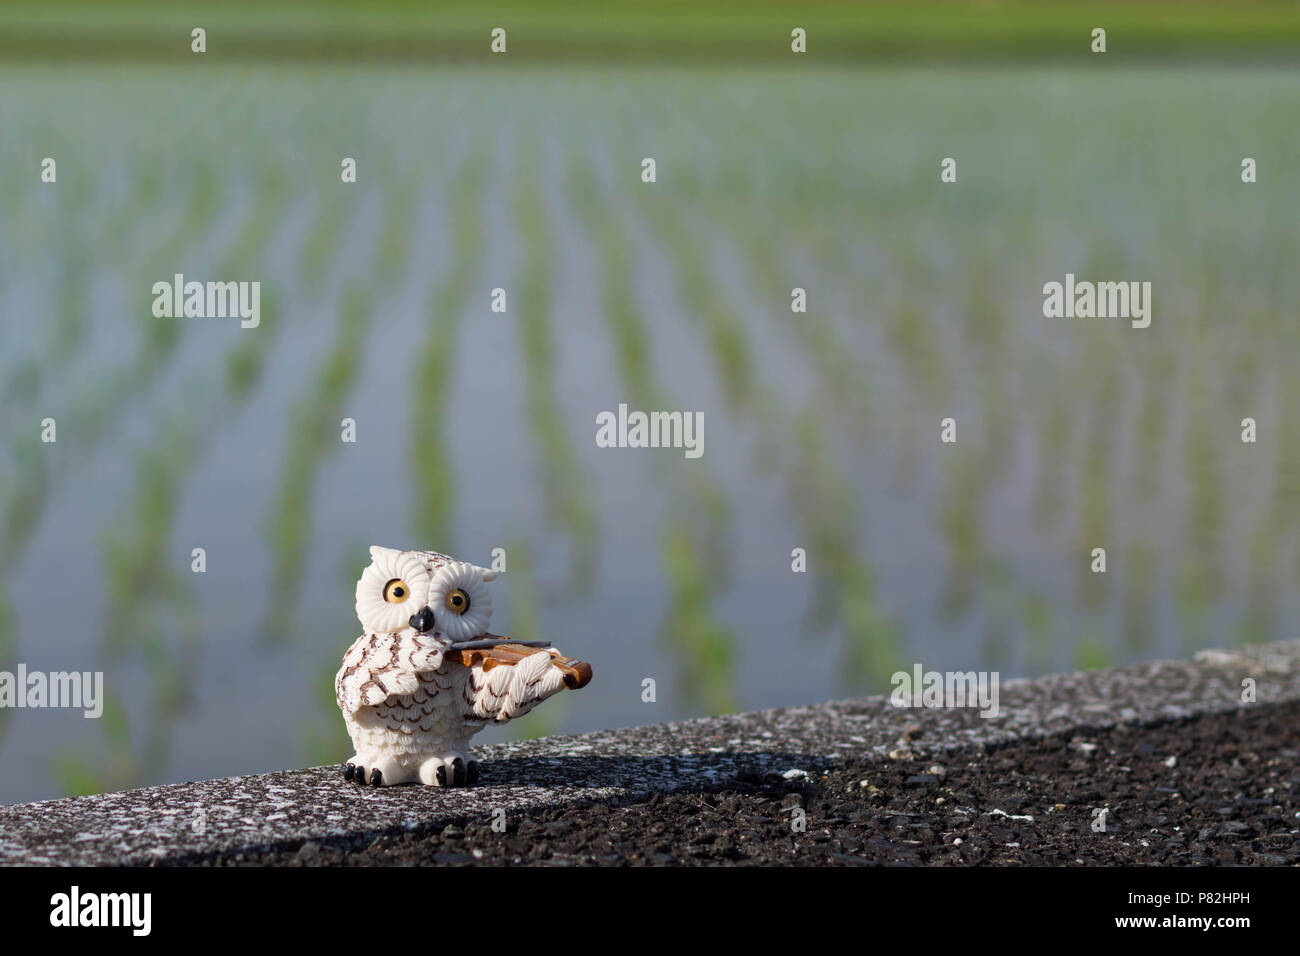 Mini white owl figurine playing the violin in a newly planted rice field background. - Stock Image